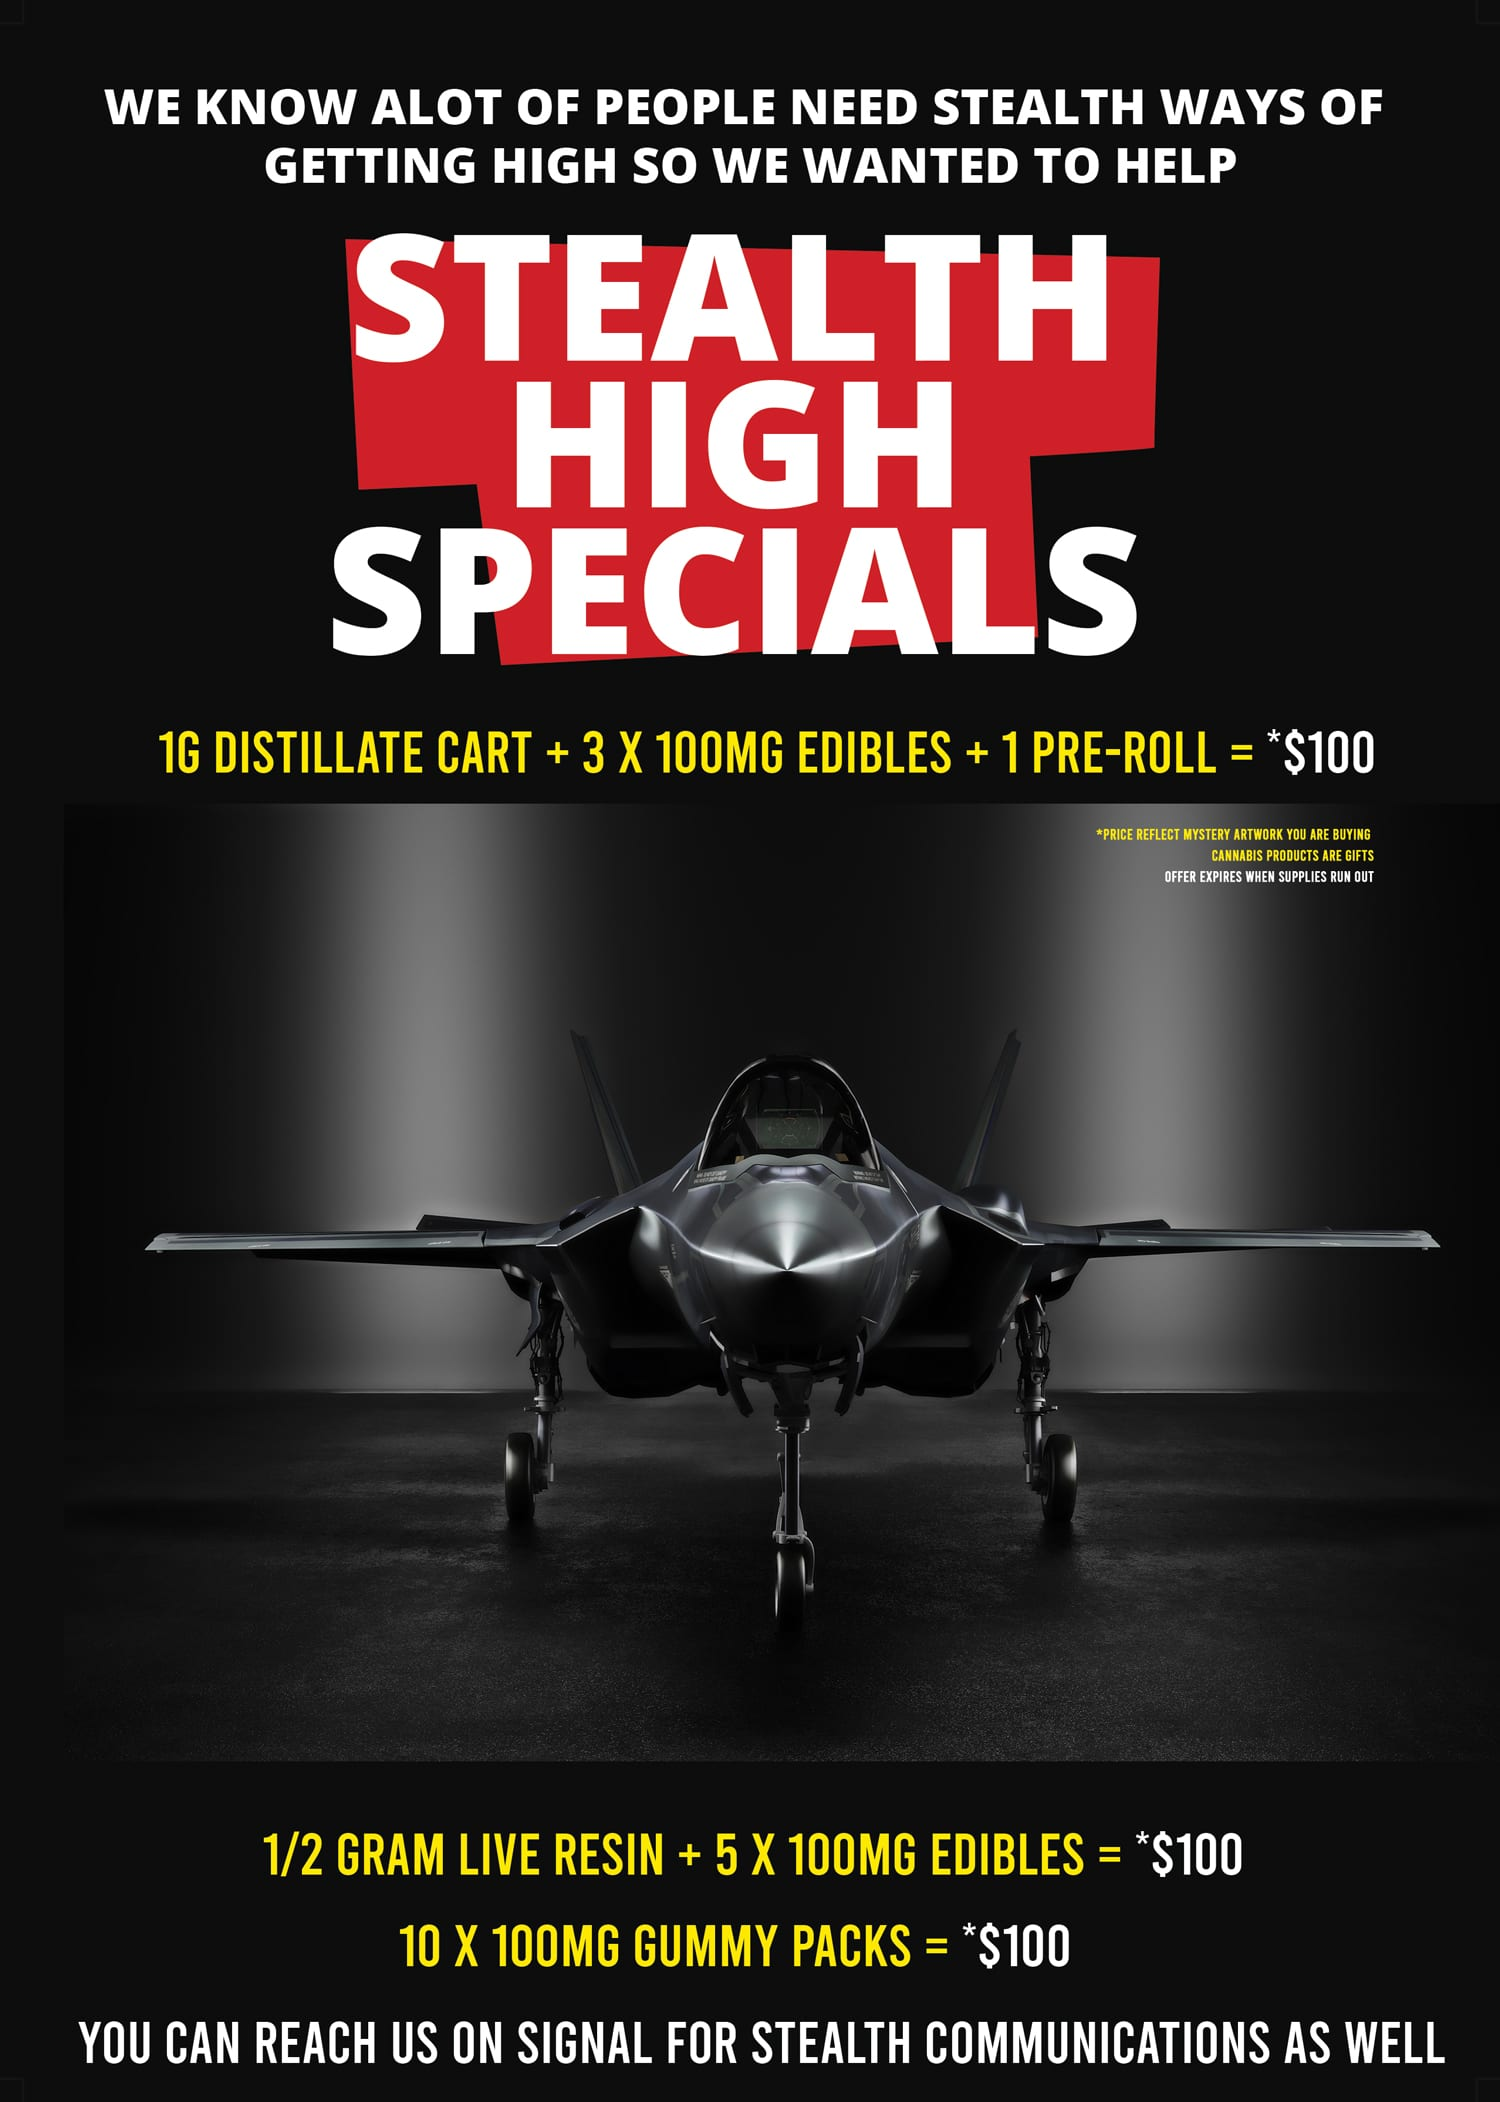 puff kings dc stealth high special promo image